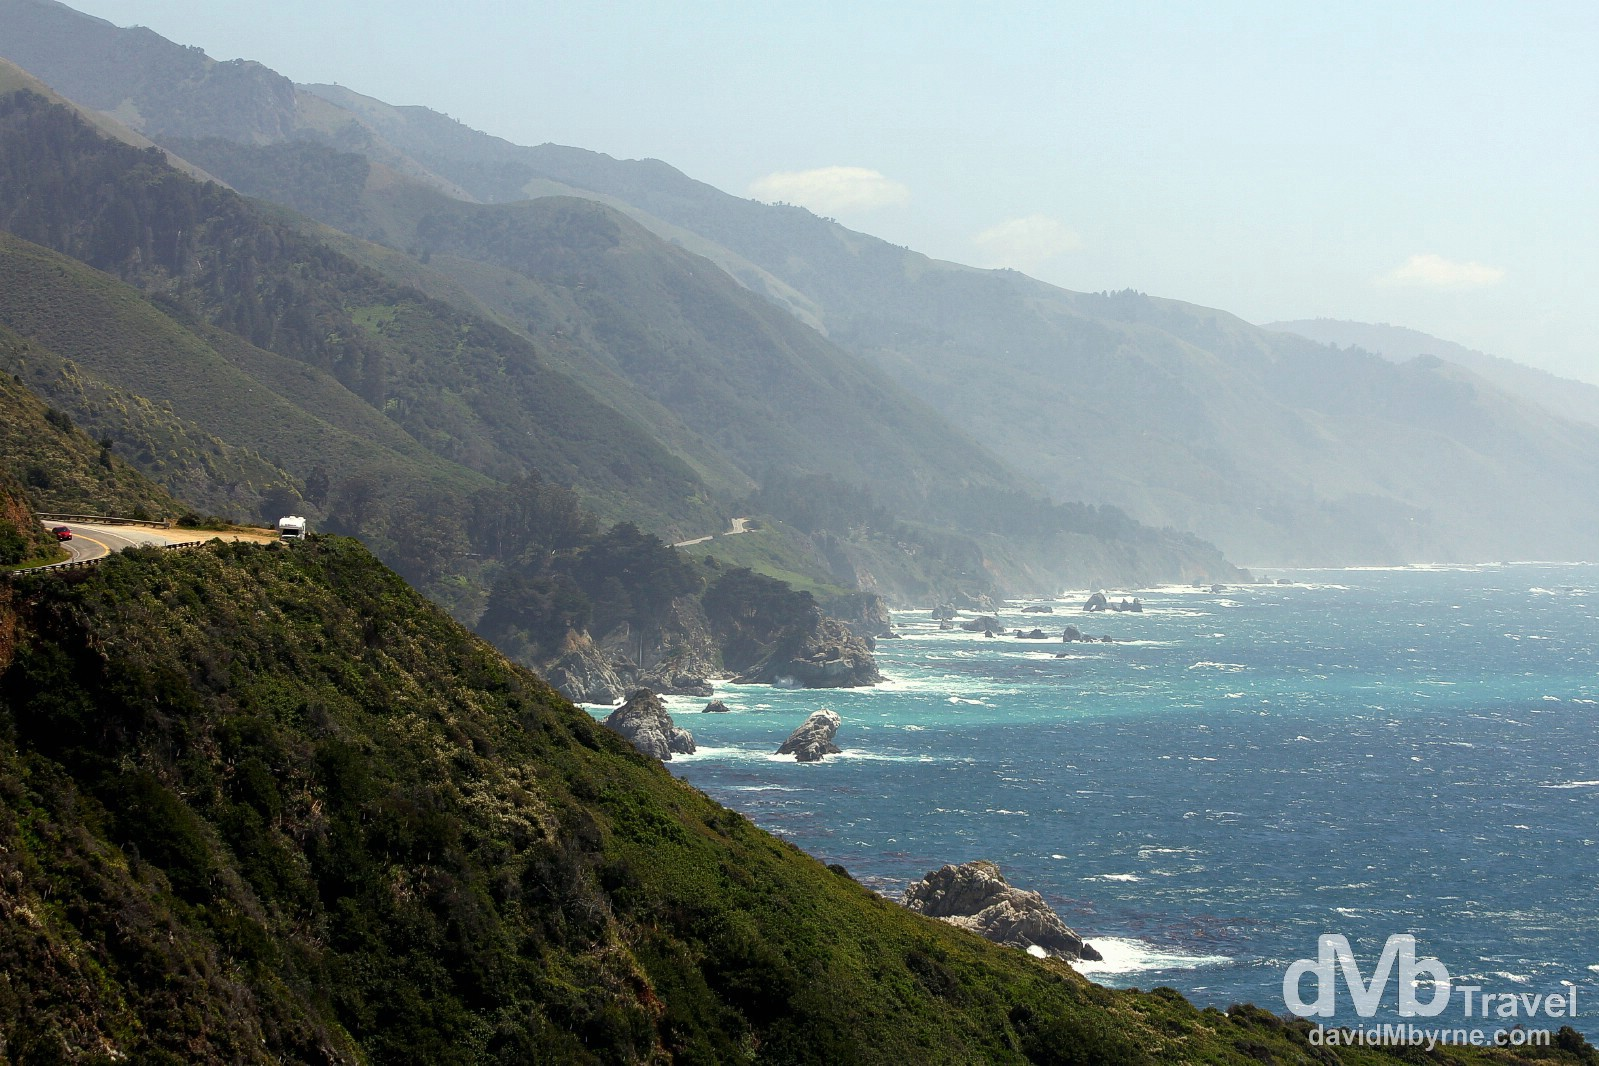 State Route 1/Pacific Coast Highway, California, USA. April 8th 2013.